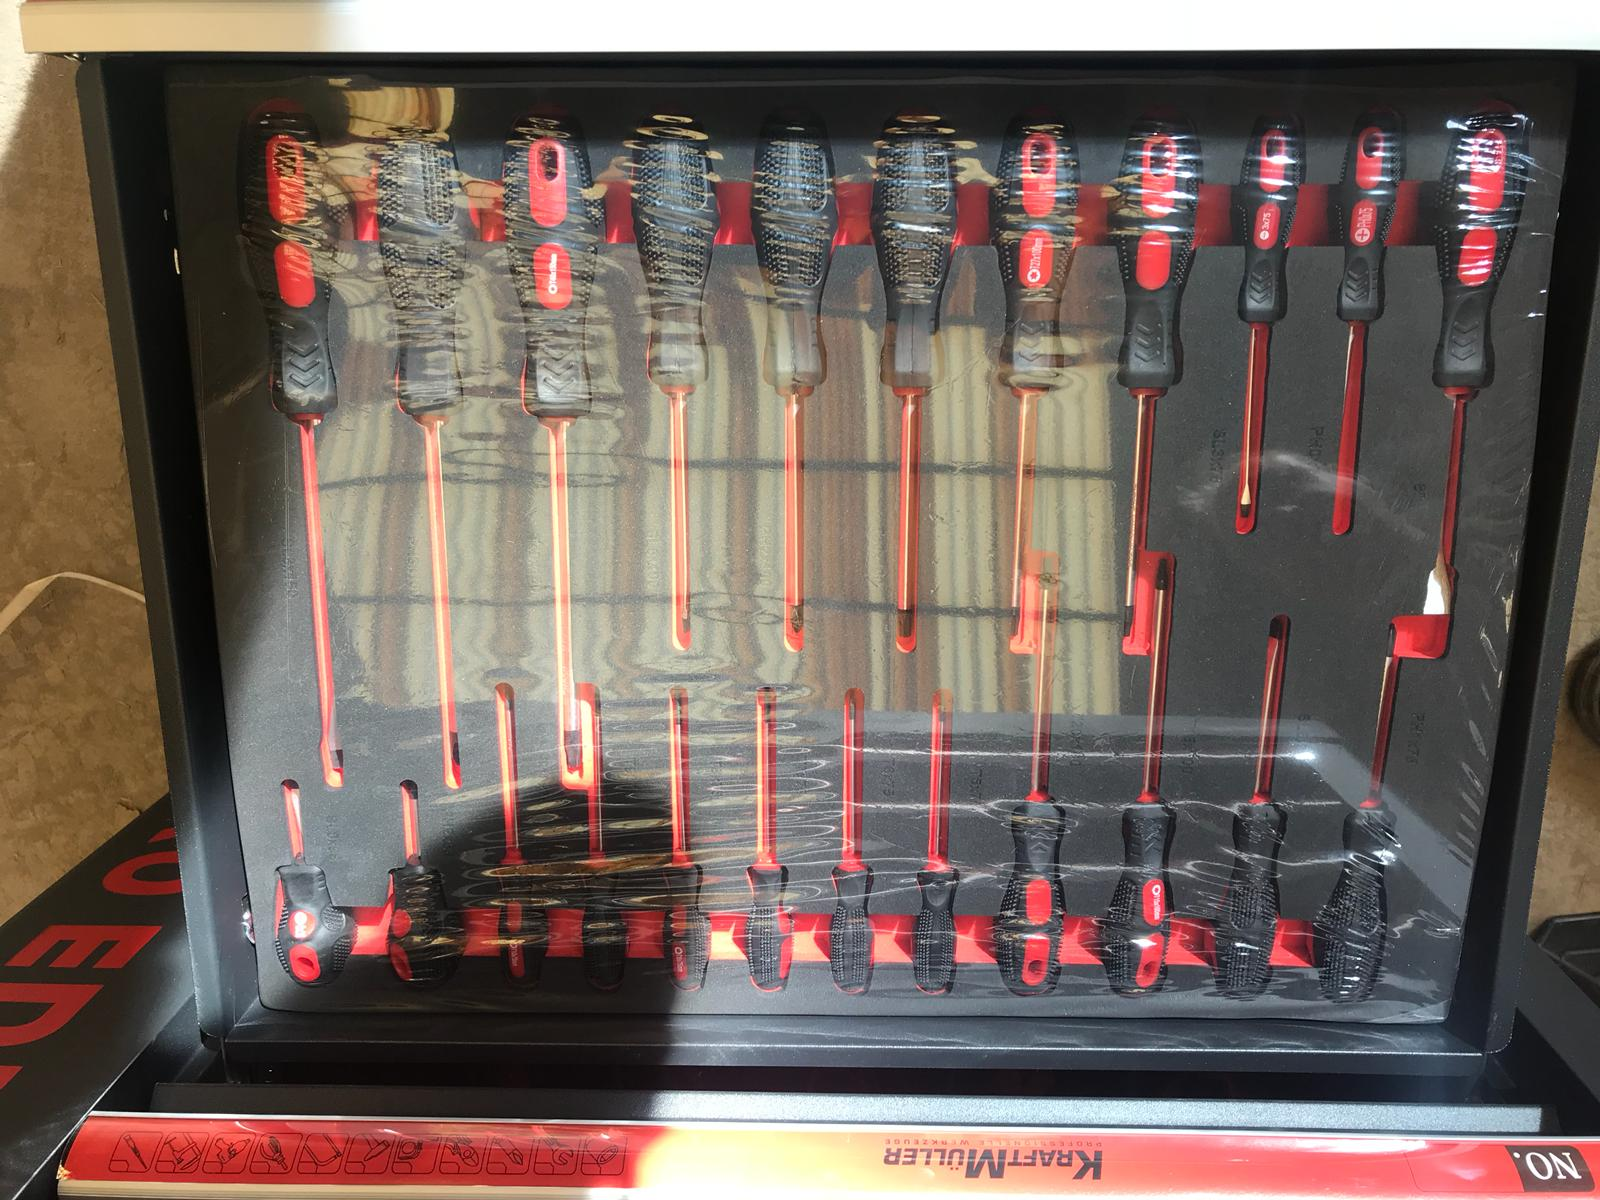 Lot 50018 - V Brand New Seven Drawer Locking Garage Tool Cabinet With Lockable Casters - Seven EVA Drawers of